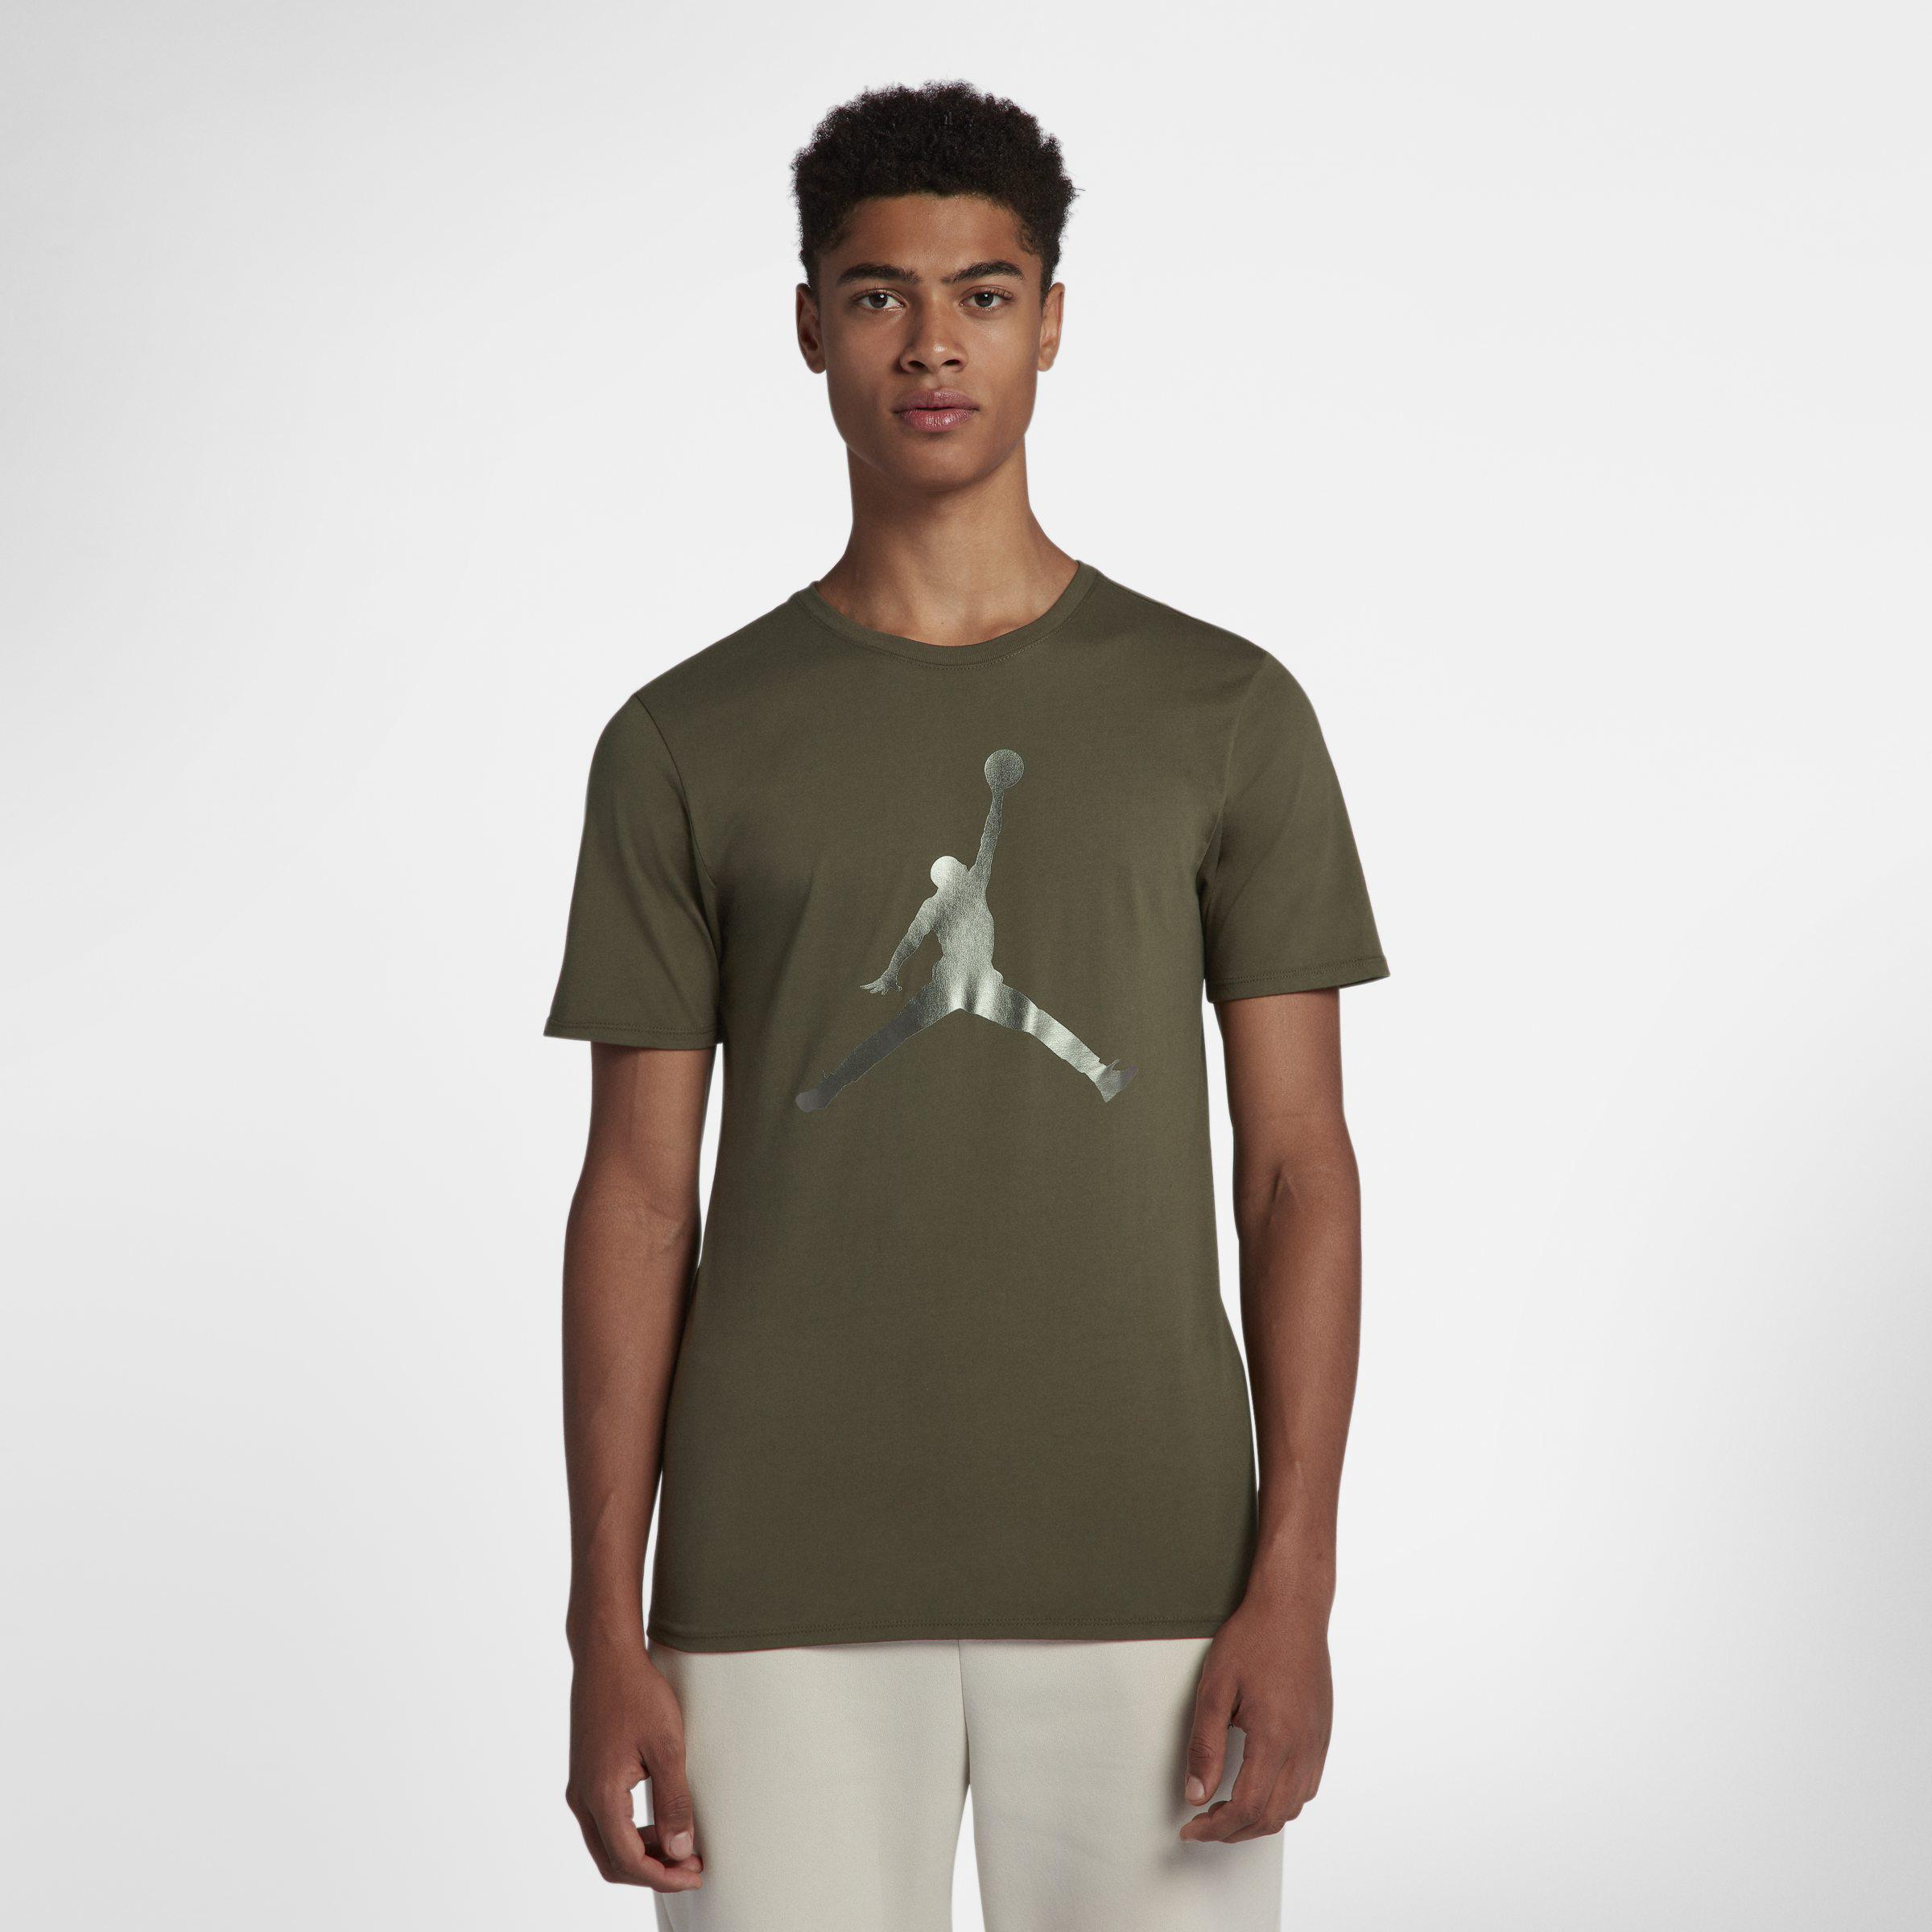 online store 32d30 113f0 Nike Jordan Lifestyle Iconic Jumpman T-shirt in Green for Men - Lyst